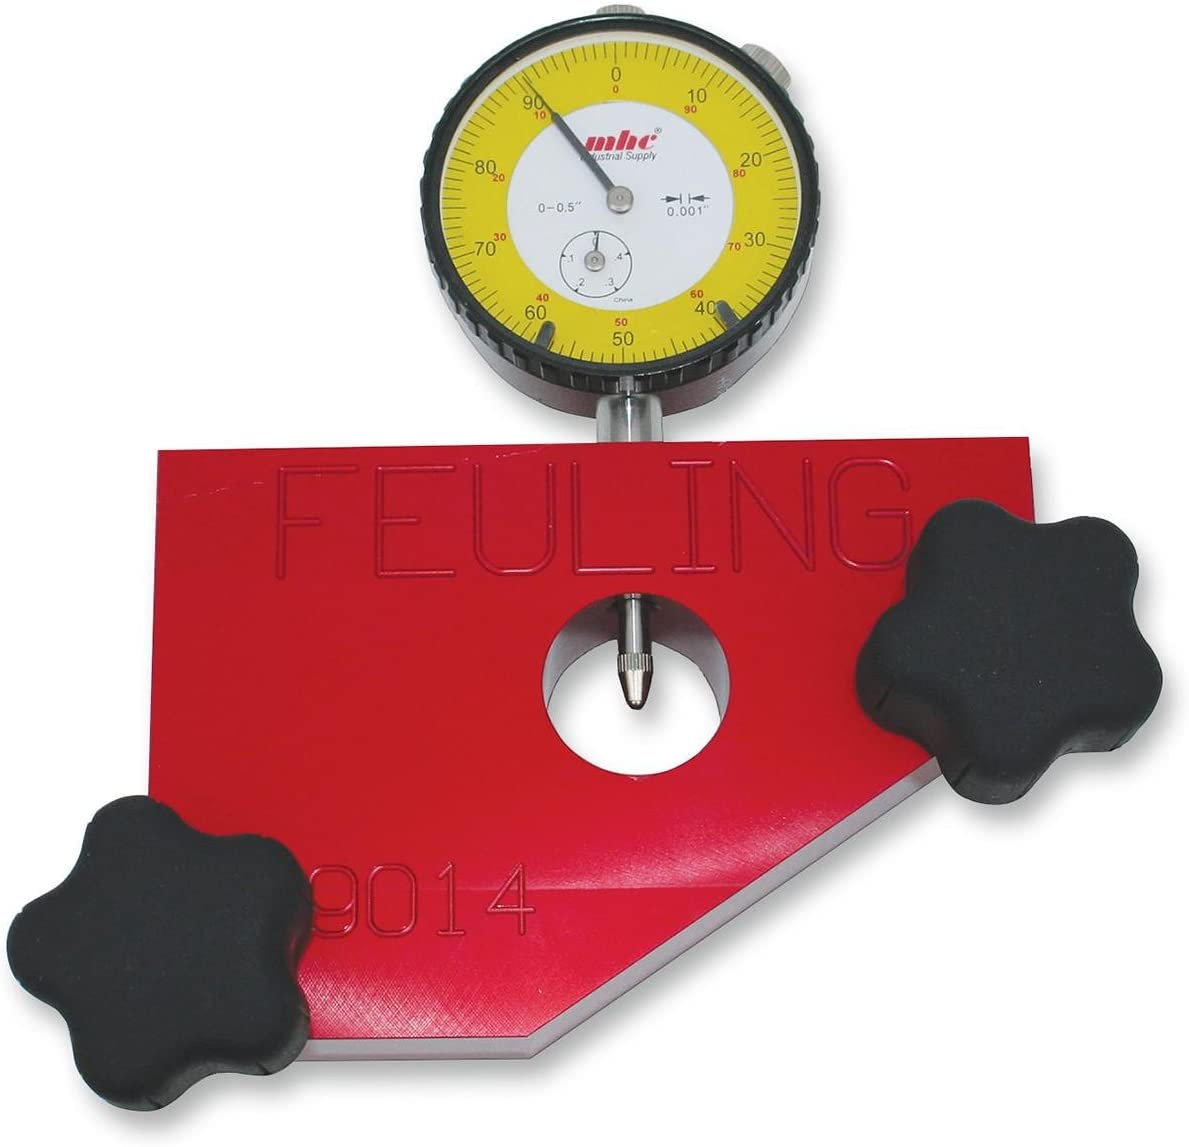 Feuling 9014 Pinon Shaft Limited price sale Run Out Backlash Tool and Max 53% OFF Drive Gear